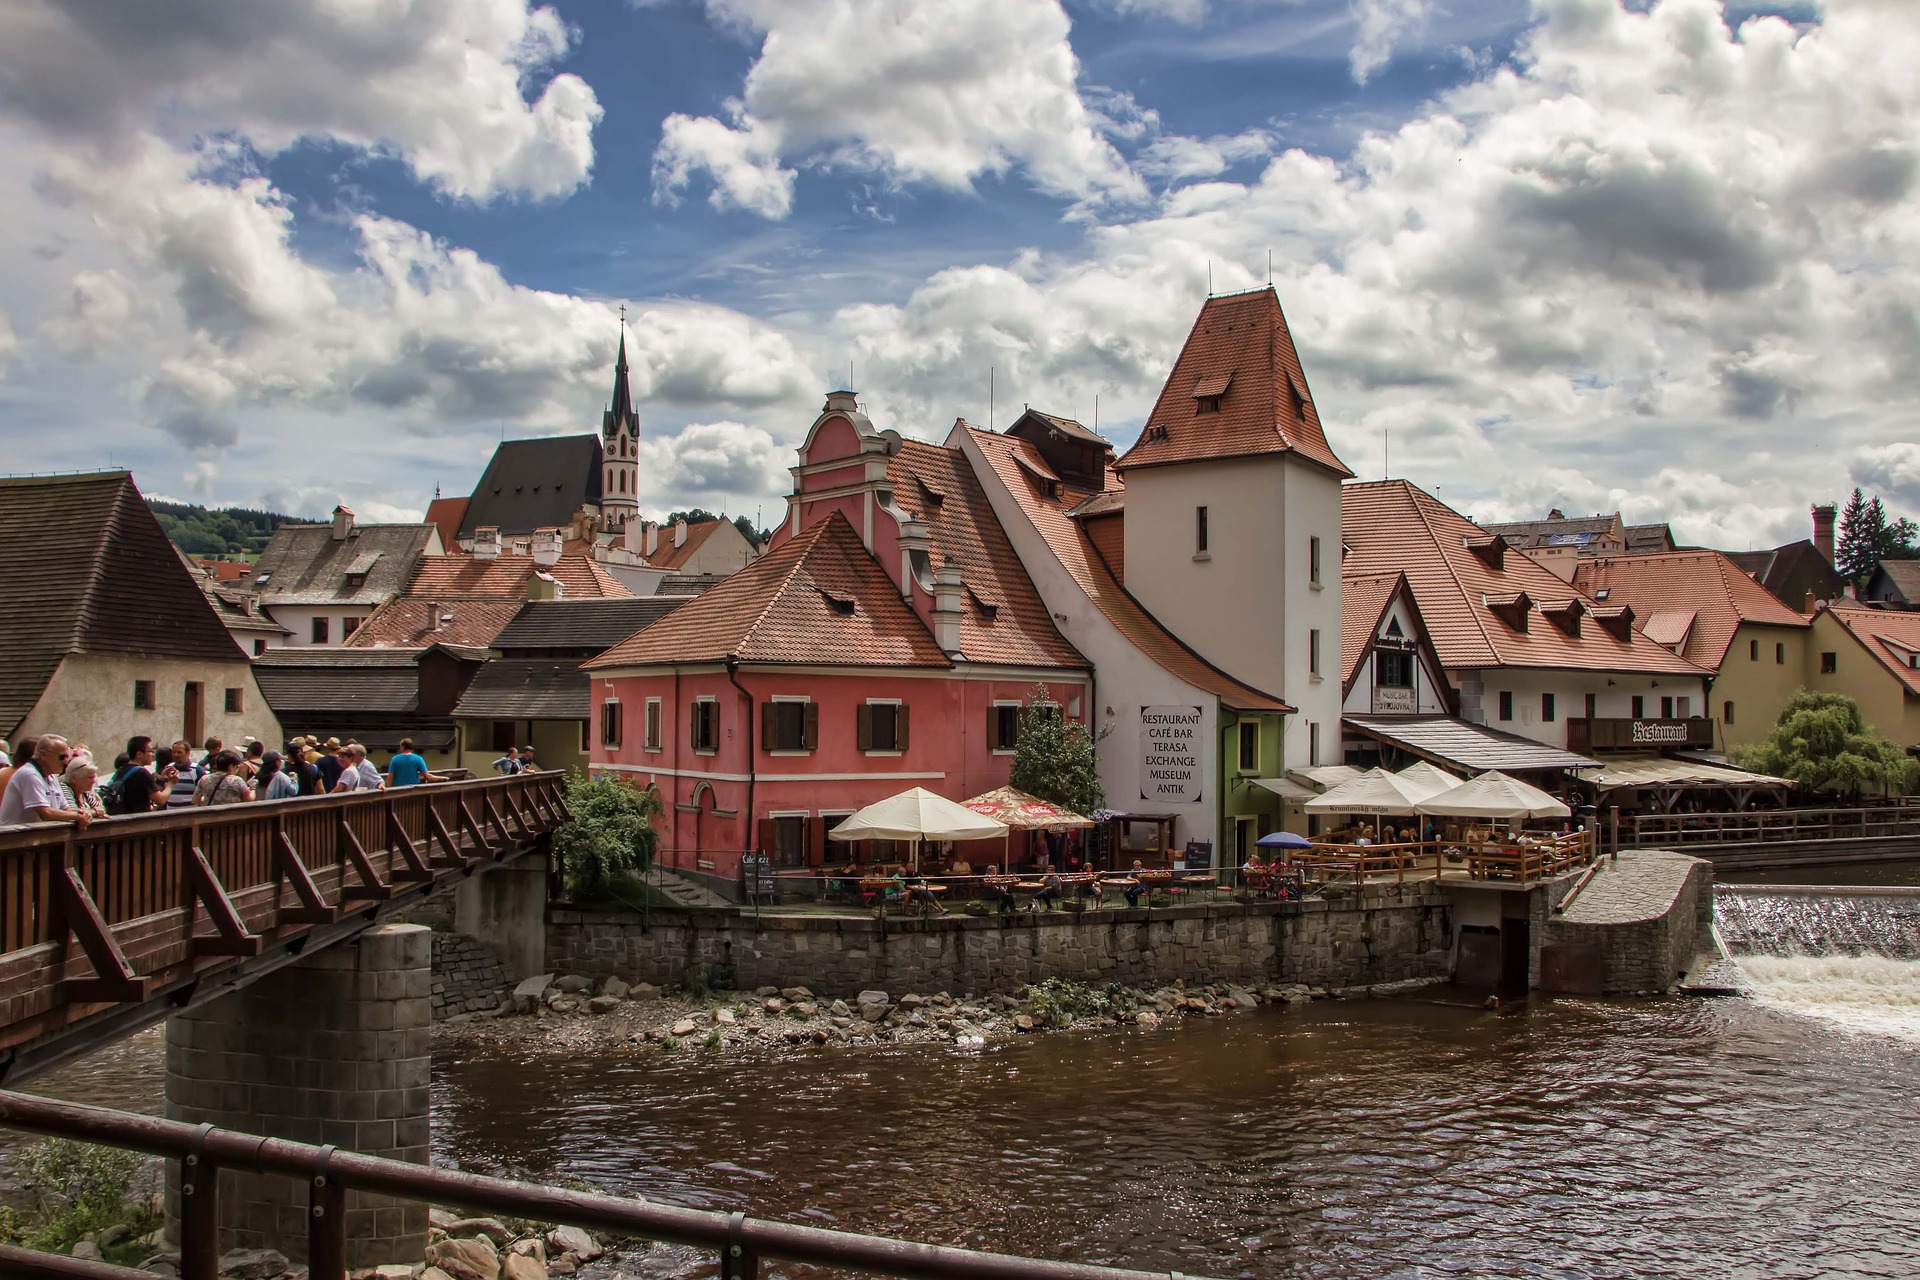 Bridge crossing the Vltava River in Cesky Krumlov, pearl of South Bohemia in Czech Republic.